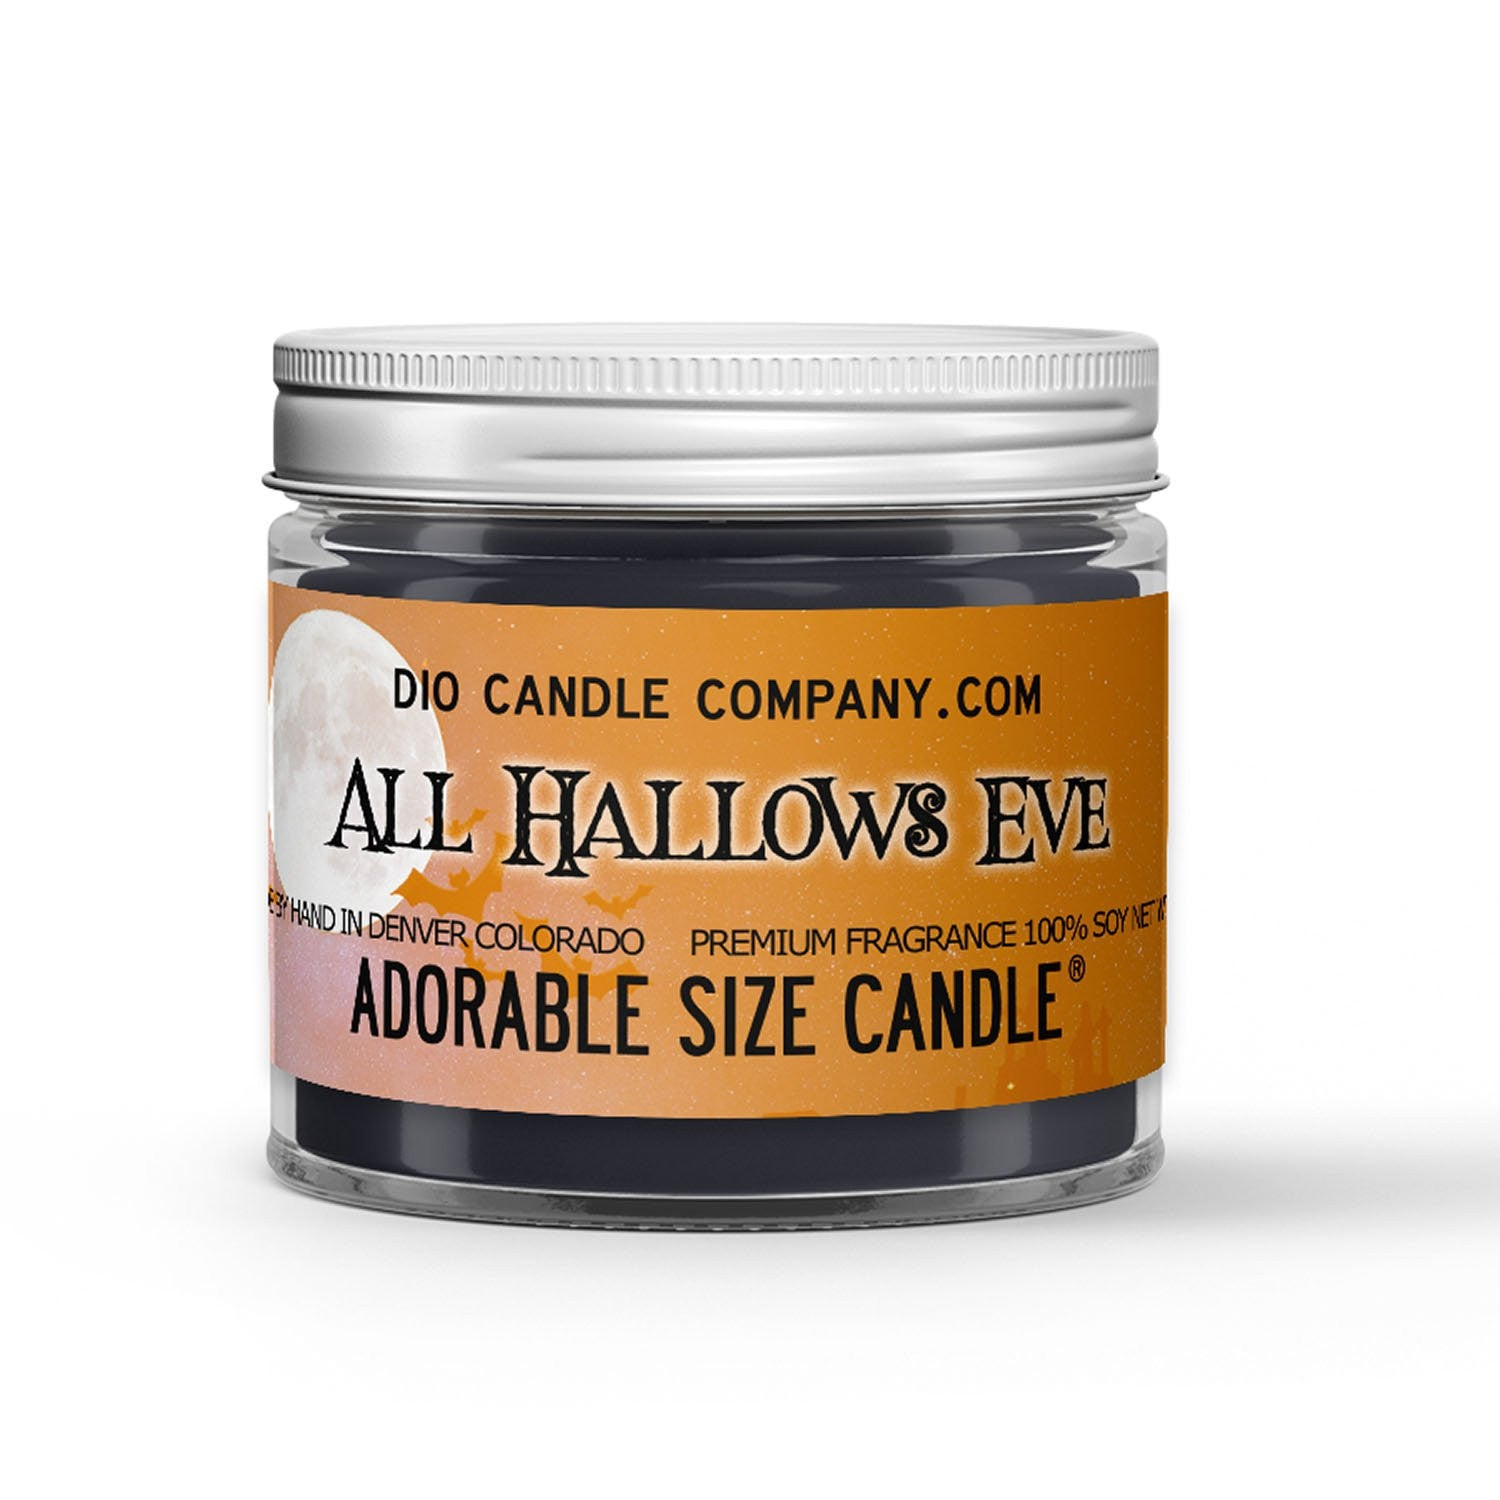 All Hallows Eve Candle - Ginger - Pumpkin - 1oz Adorable Size Candle® - Dio Candle Company